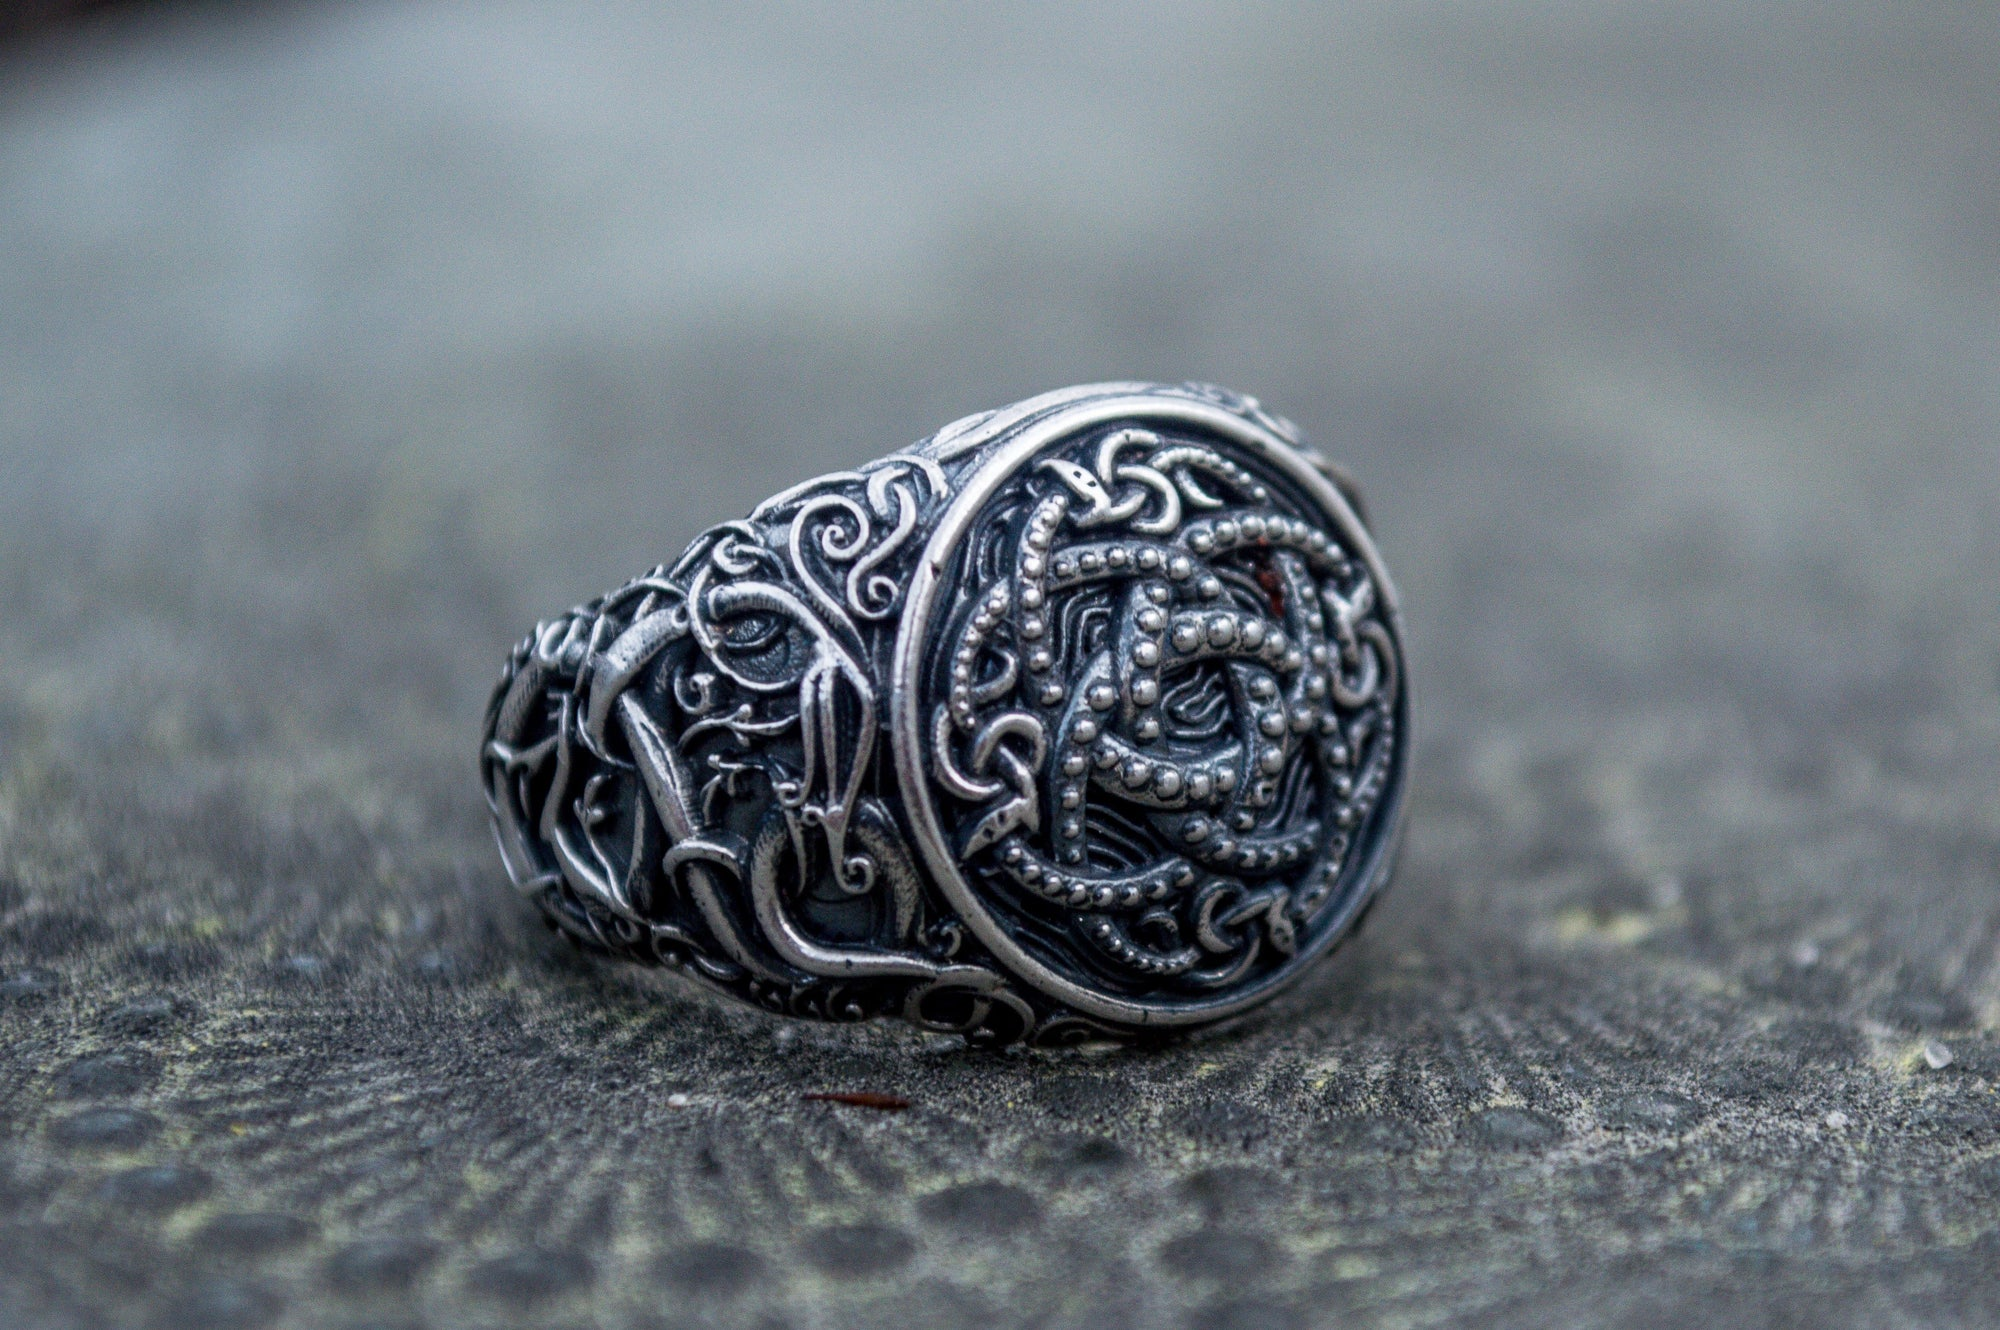 Viking Jormungandr with Urnes Style Art Handcrafted Ring